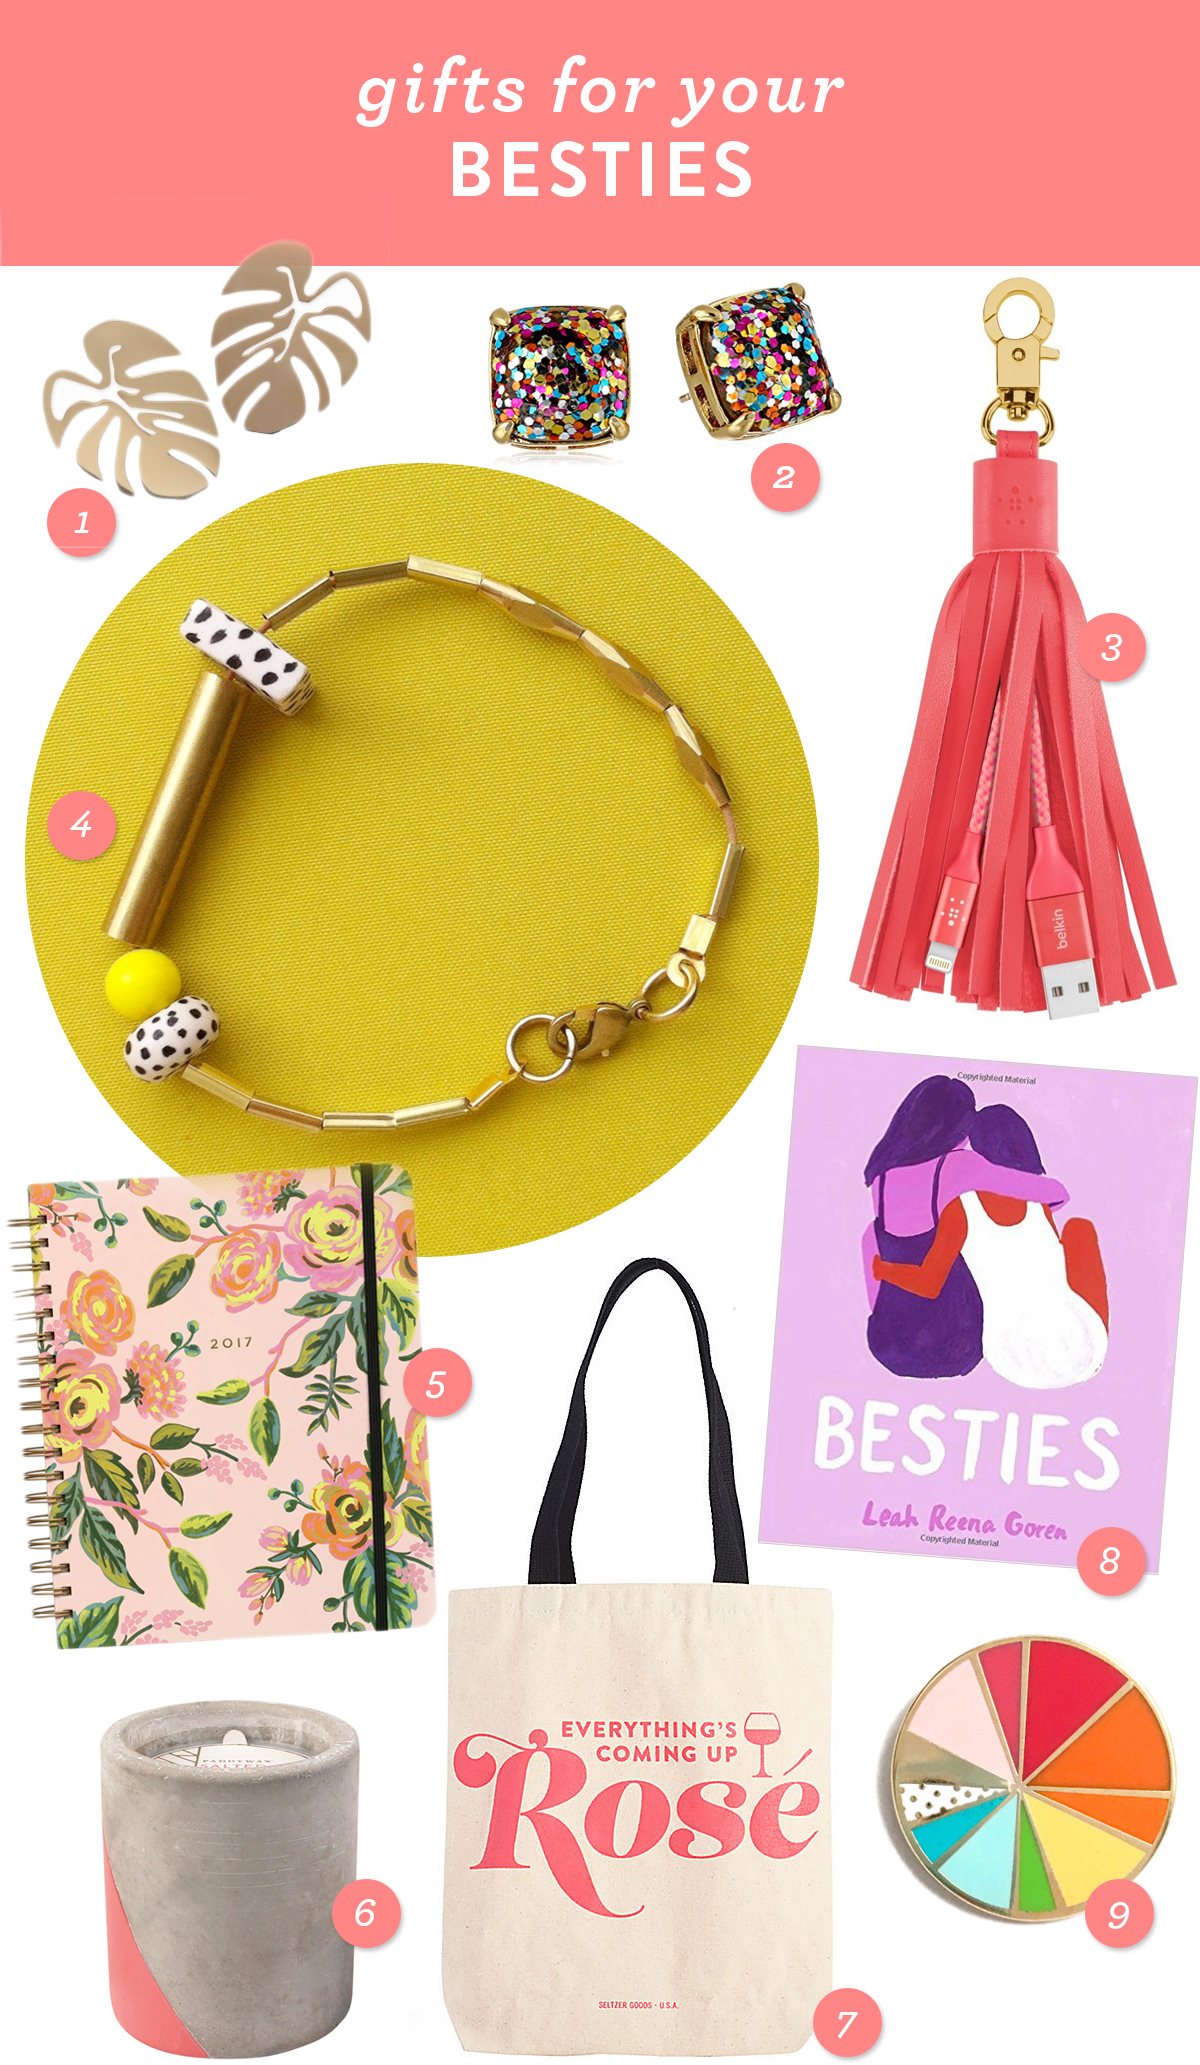 Give your BFF something special this holiday season! Here are 9 great gift ideas that fit all budgets.